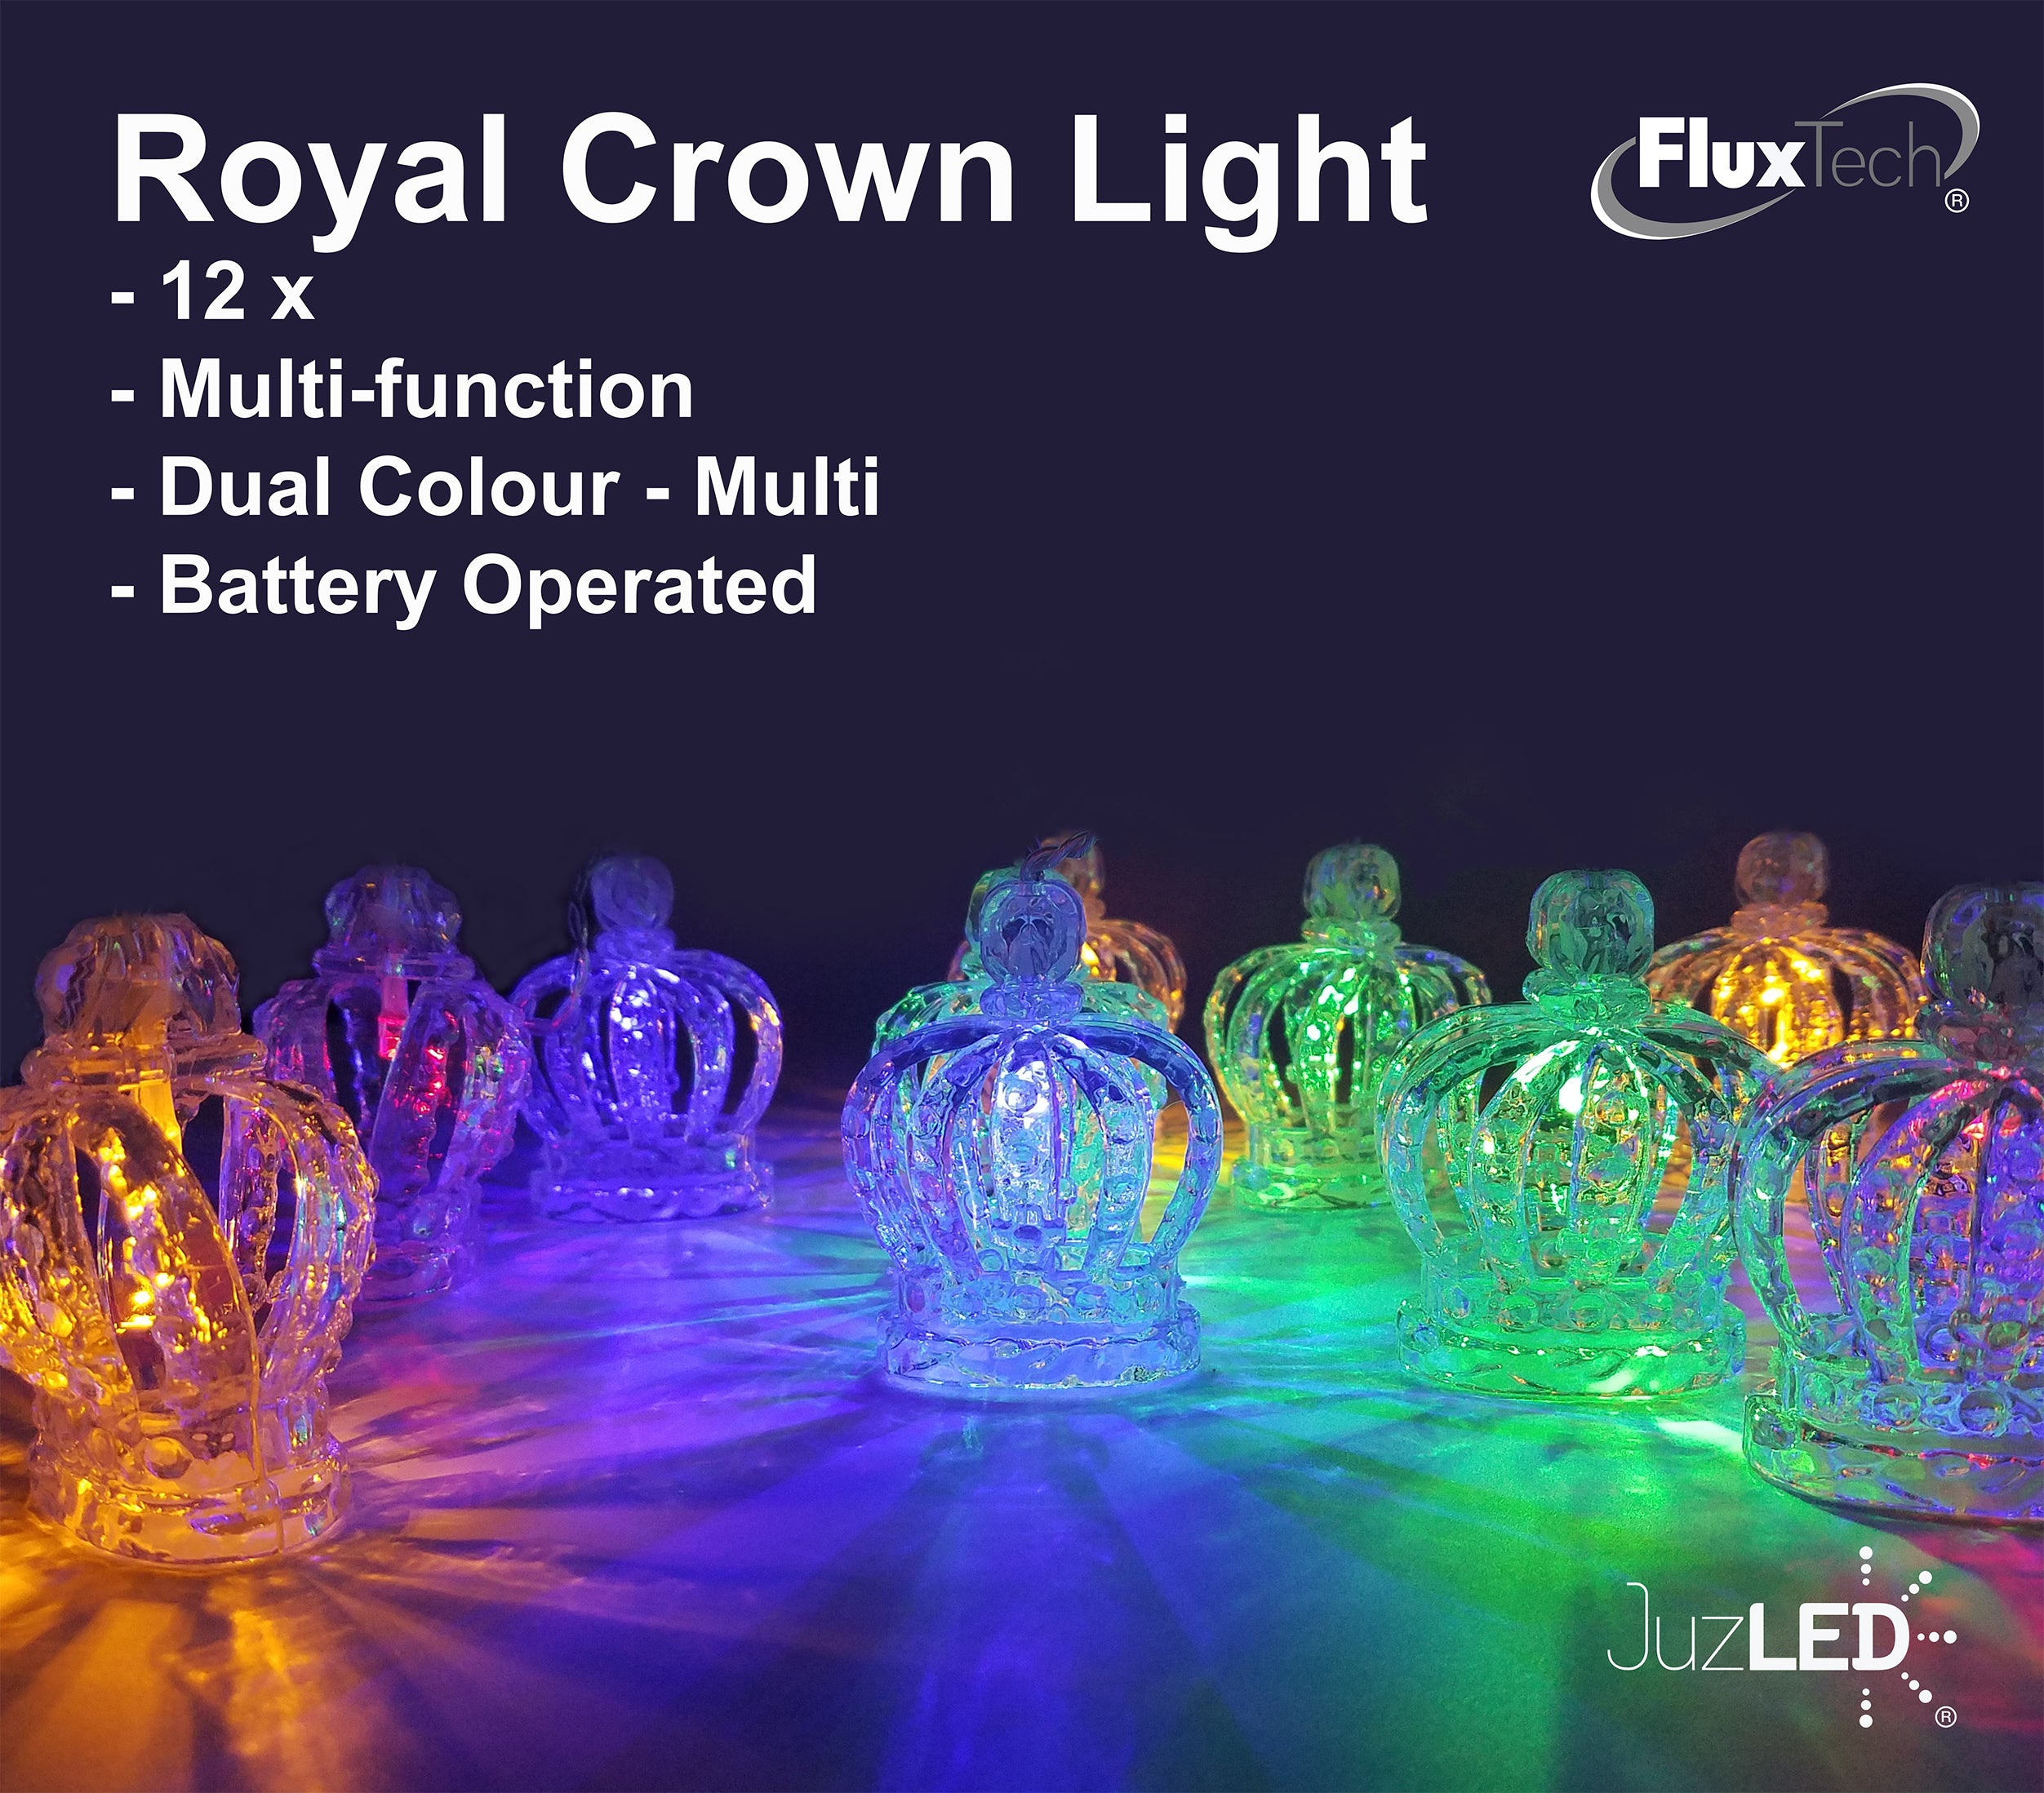 FluxTech - 3D Royal Crown 12 x Dual Colour LED String Lights by JustLED – Multi-function Effect – Timer function - Battery Operated